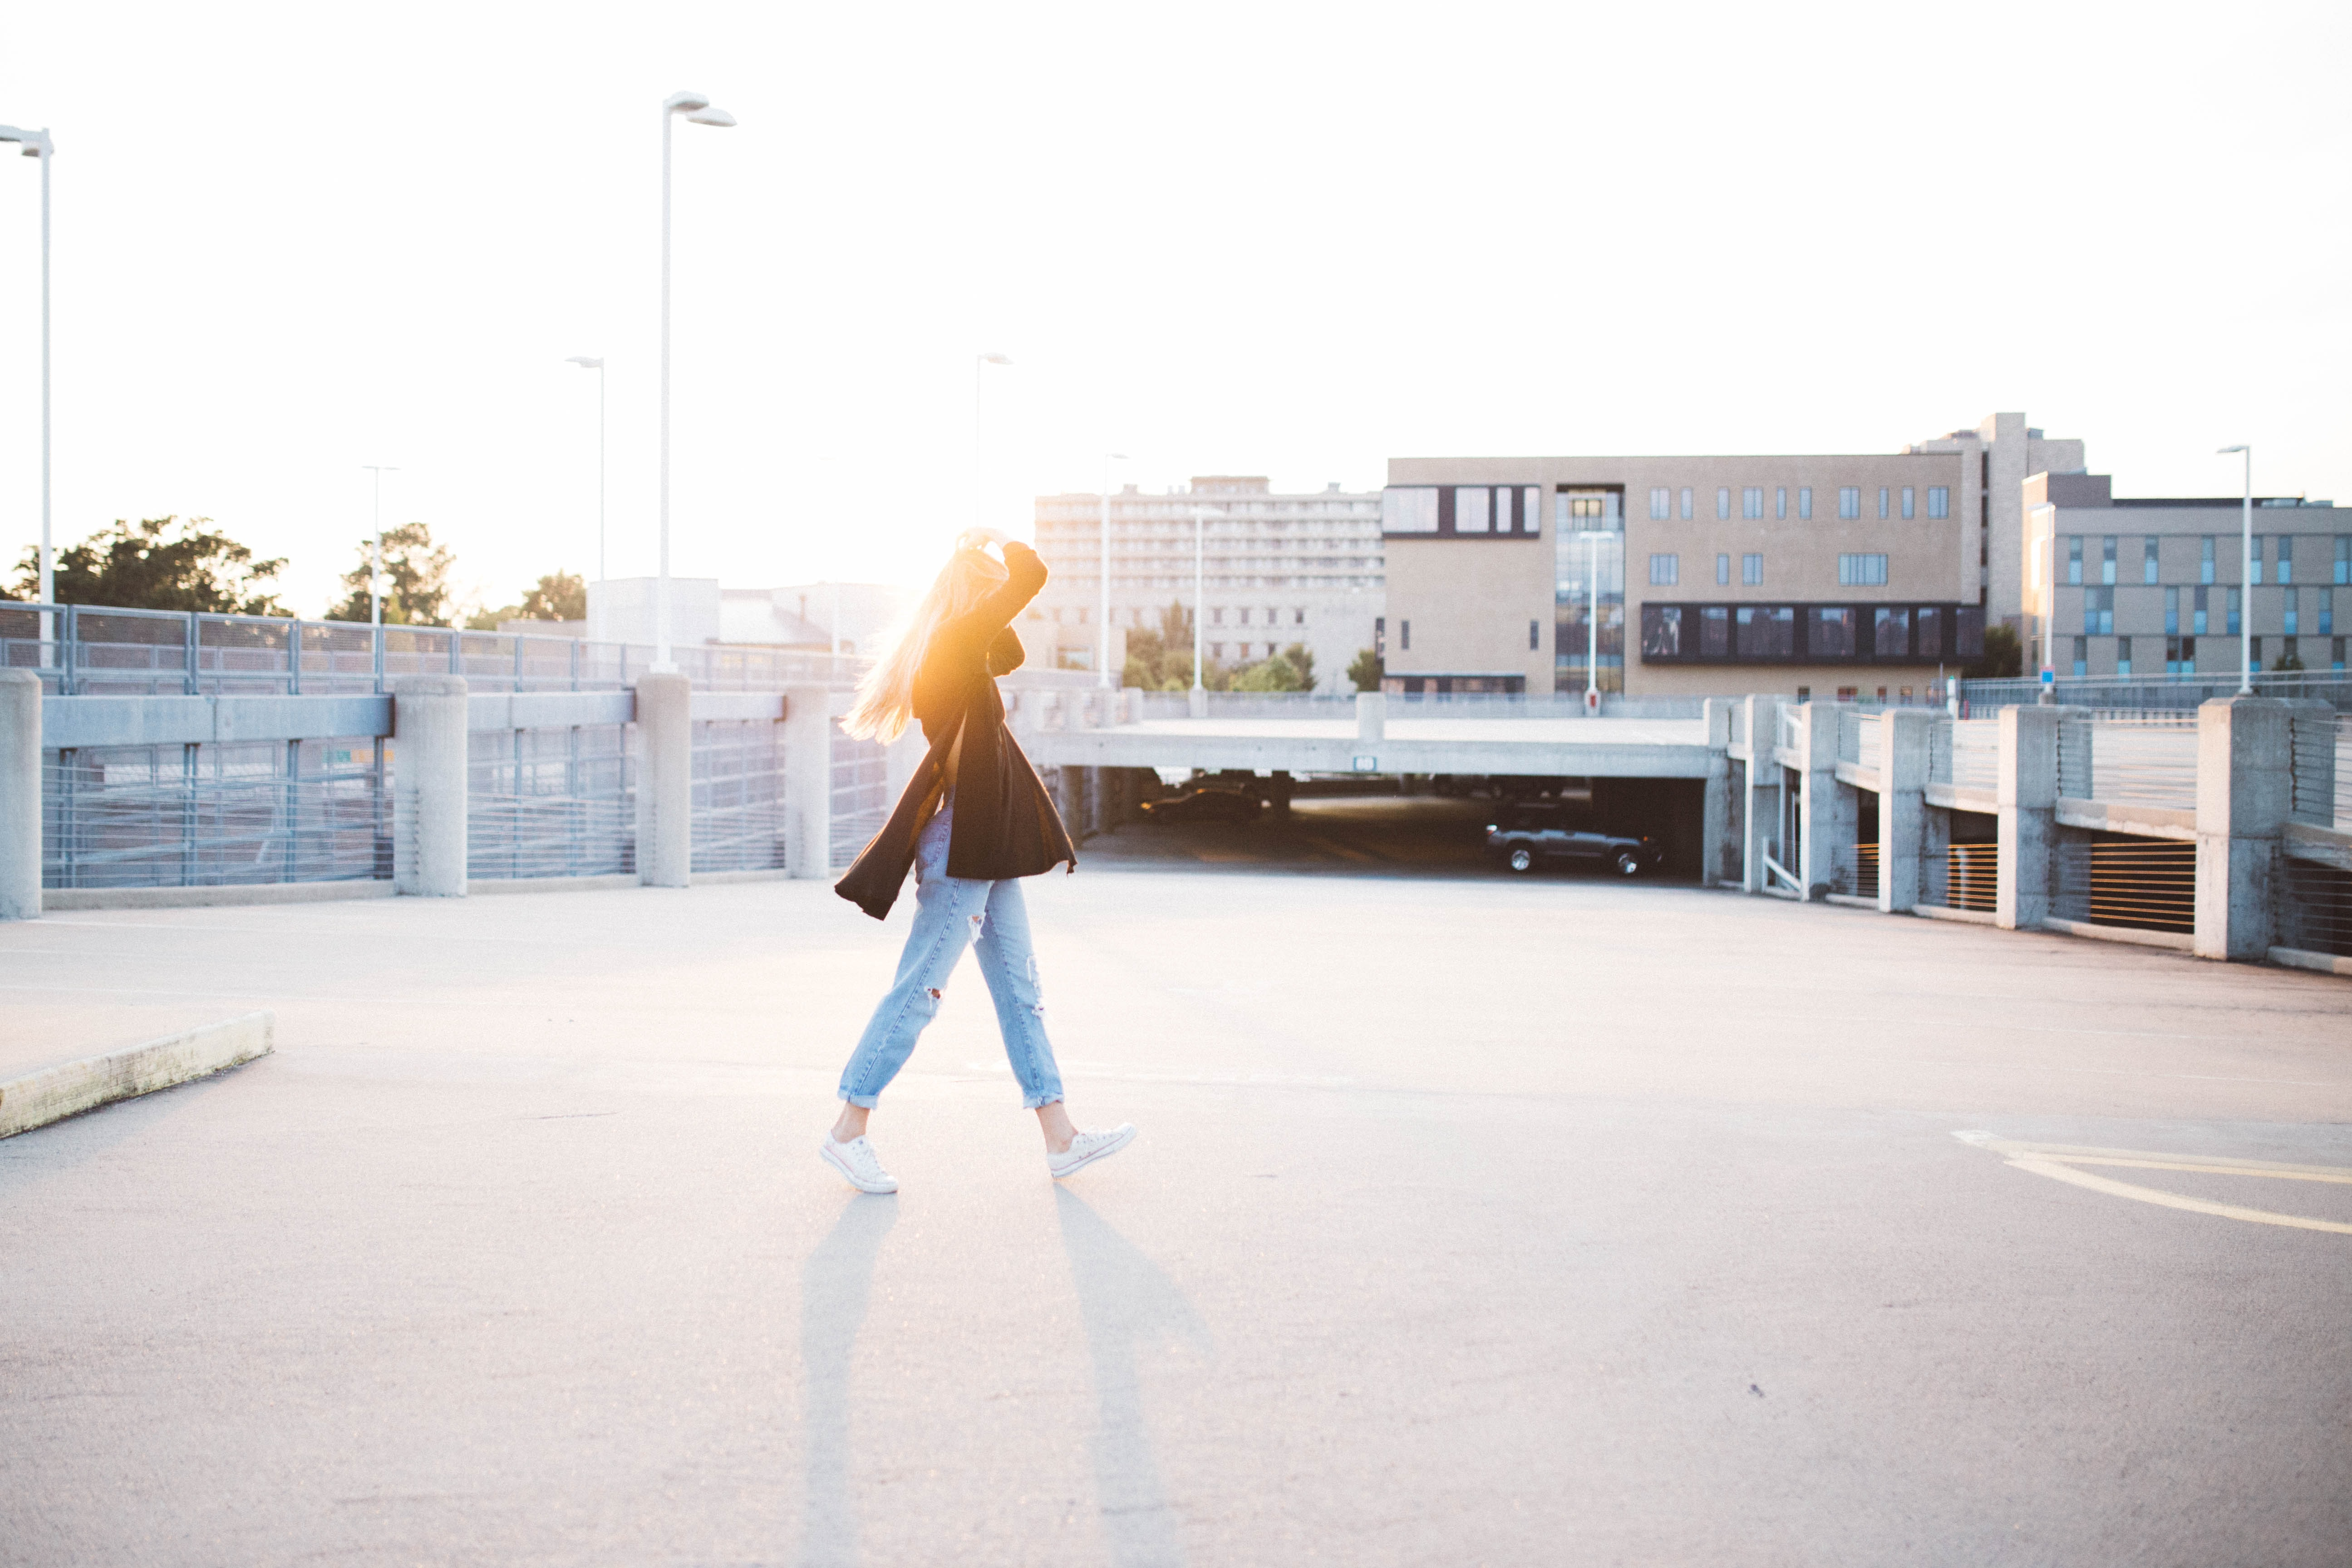 woman walking on road near building at daytime